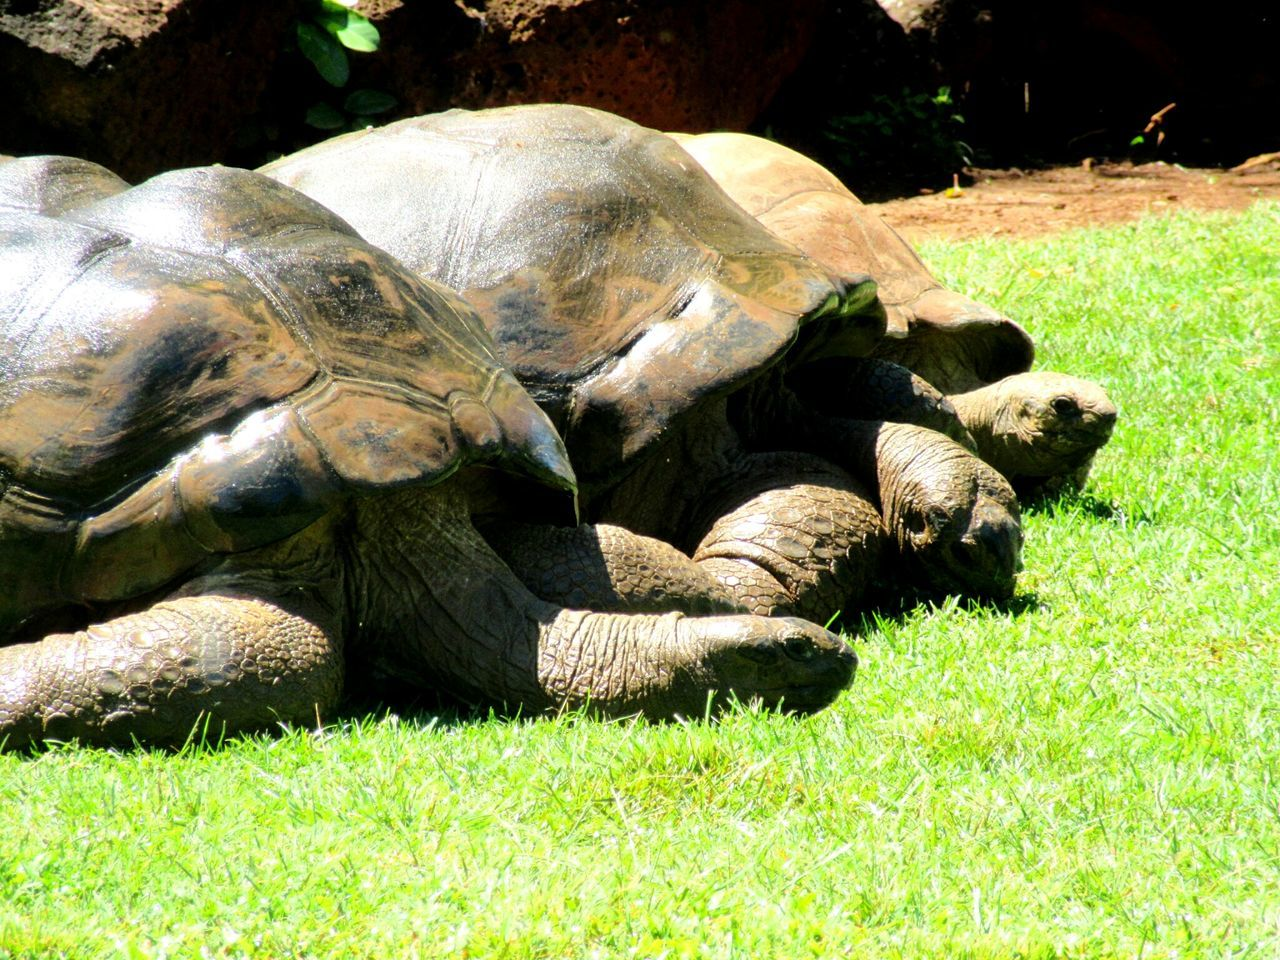 Sunlight Grass Lying Down Animal Themes Green Color Nature Day Animals In The Wild Reptile Photography Reptiles Of Eyeem Reptile Collection Backgrounds Zoo Animals  Grazing Giant Tortoise Aldabra Giant Tortoise Honolulu Zoo